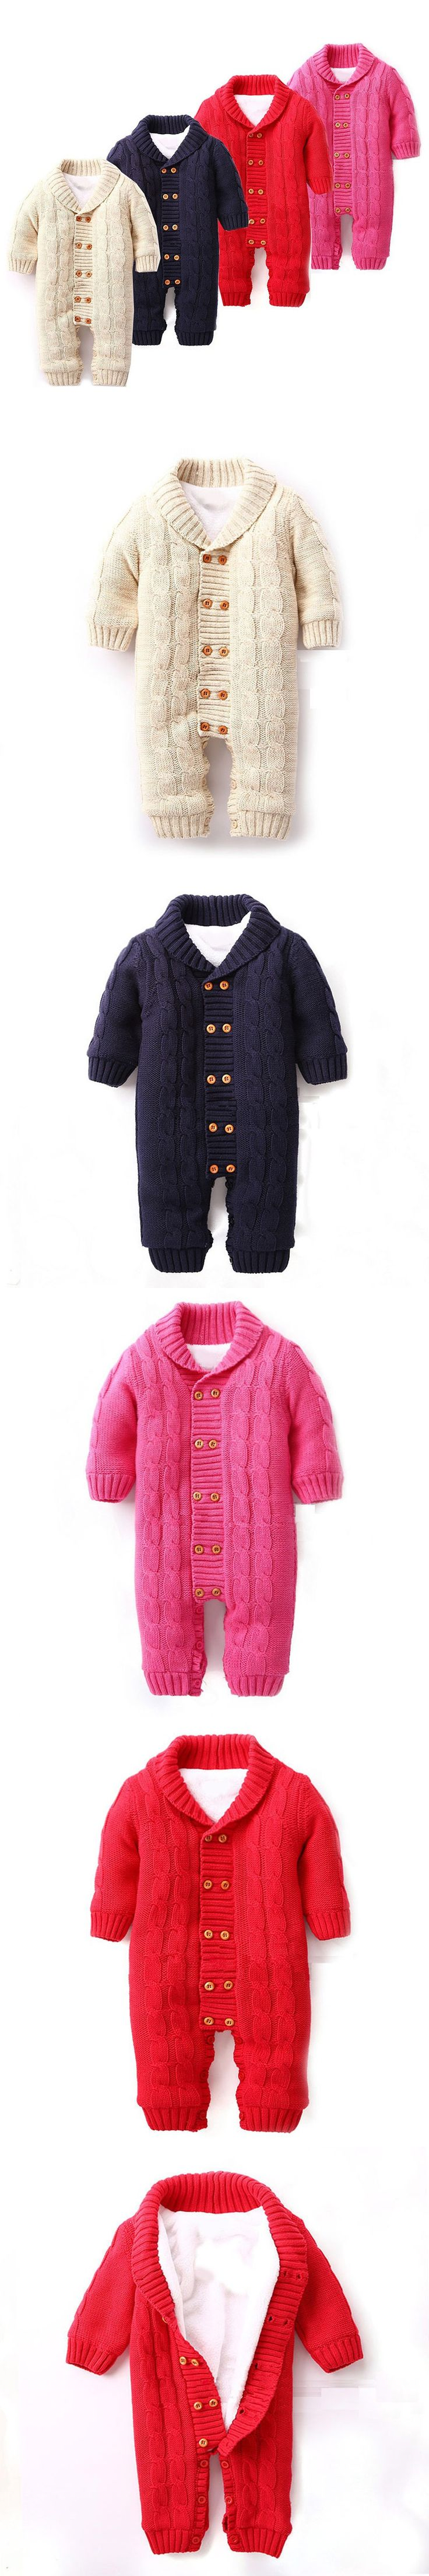 best 25 newborn winter clothes ideas on pinterest